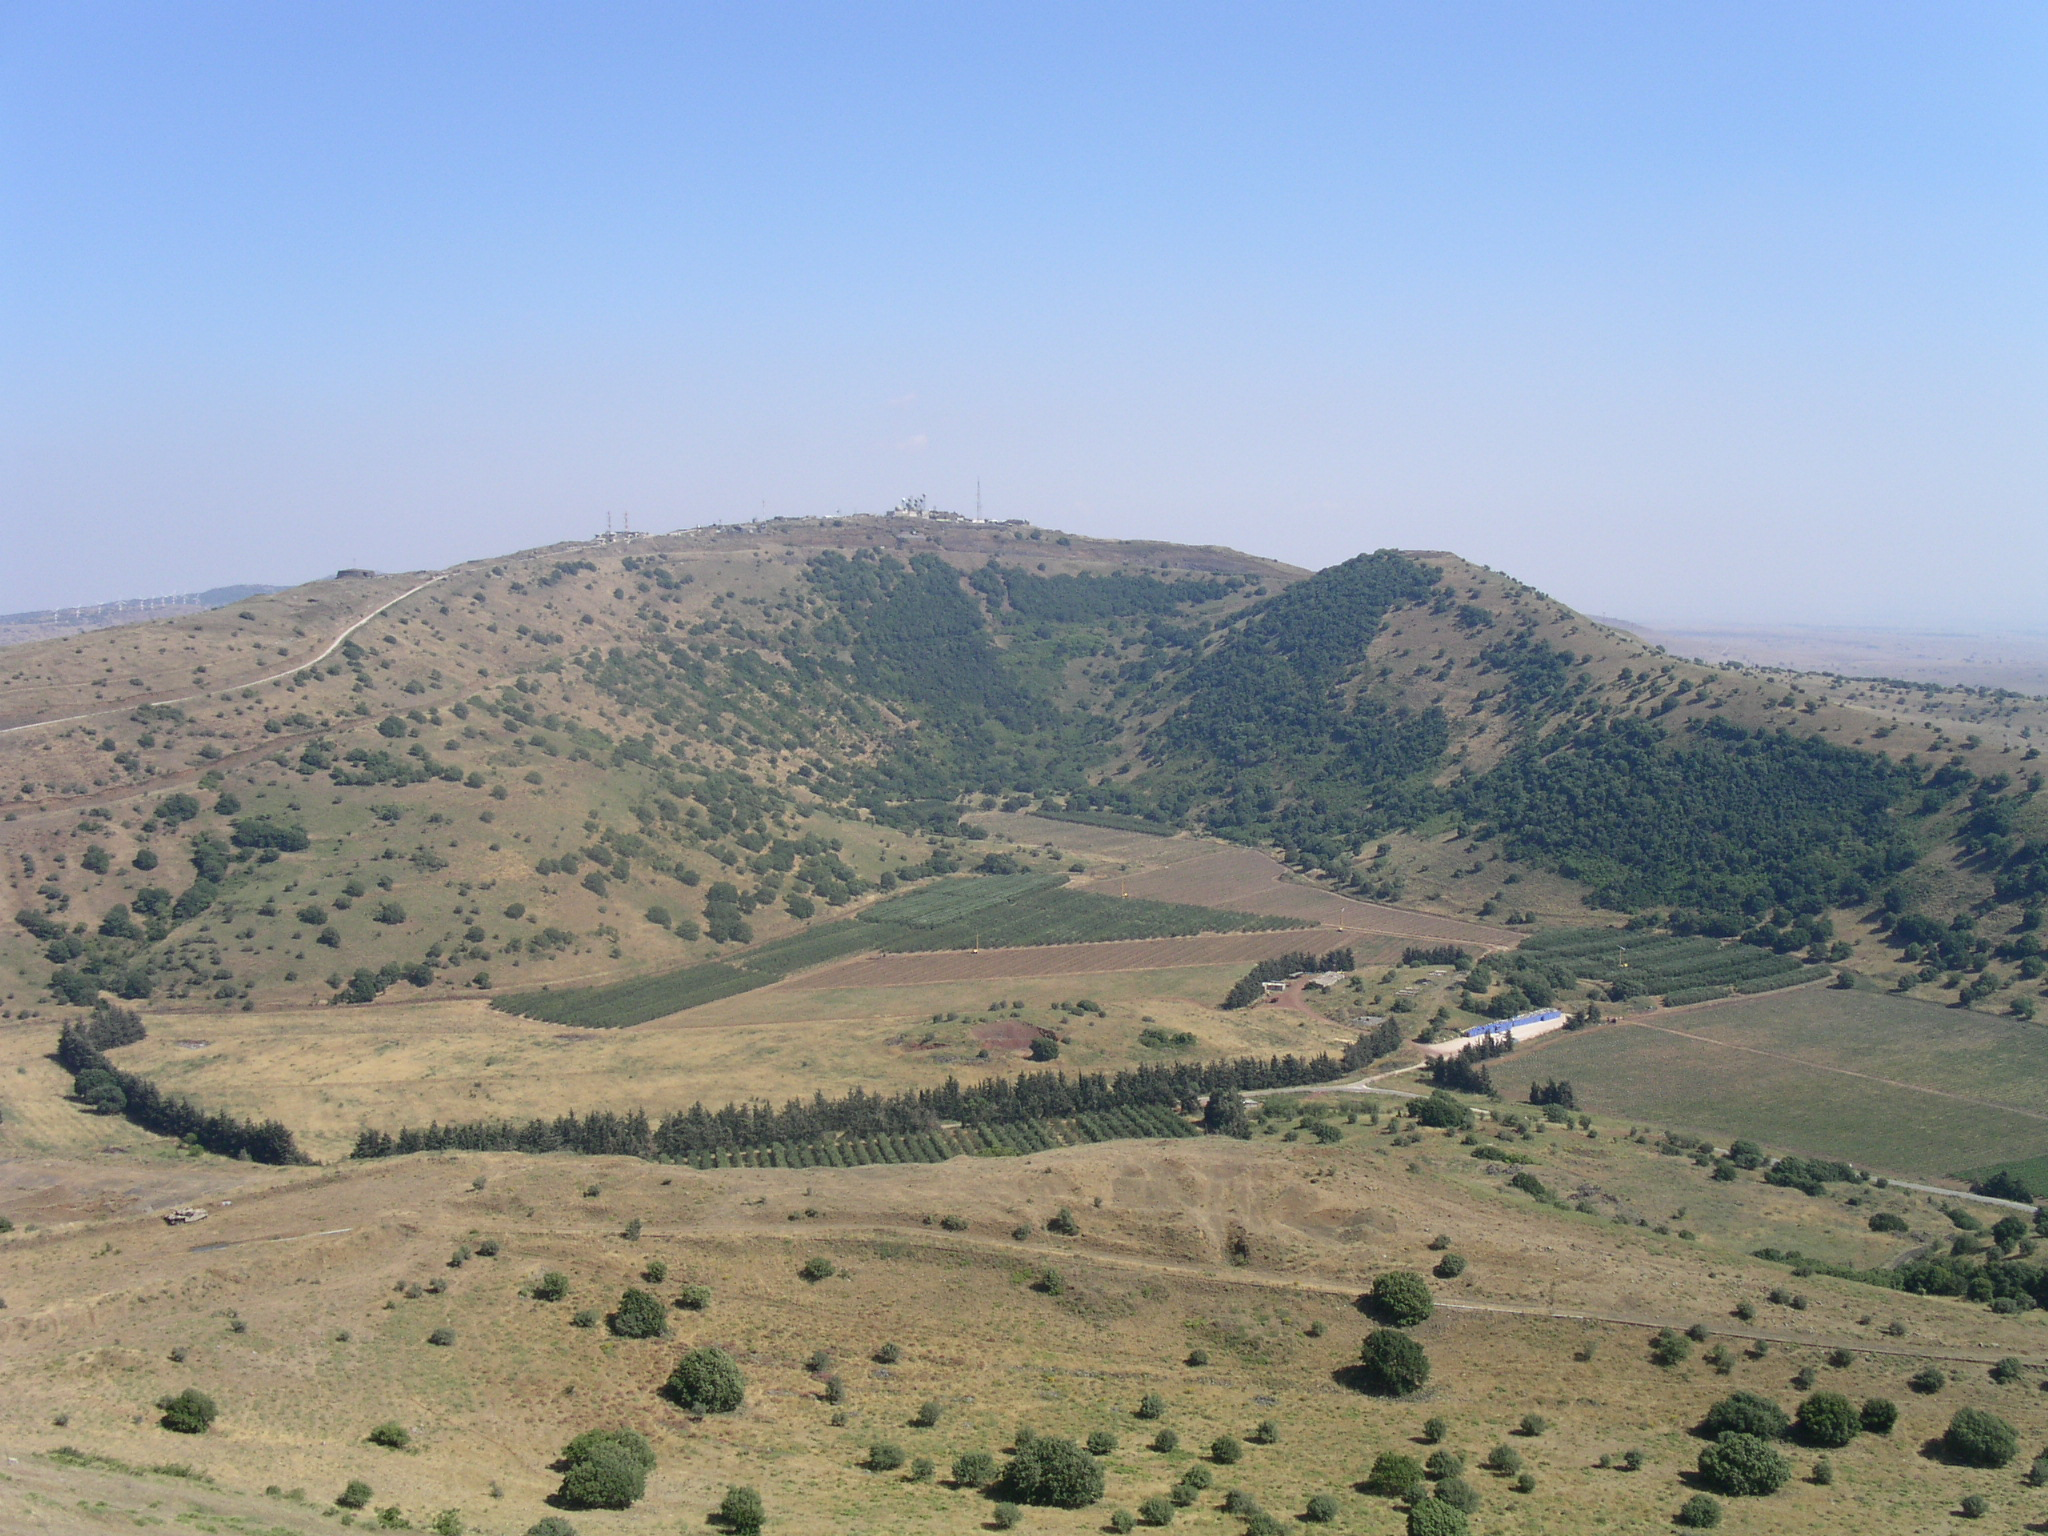 http://upload.wikimedia.org/wikipedia/commons/a/a7/Golan_1.JPG